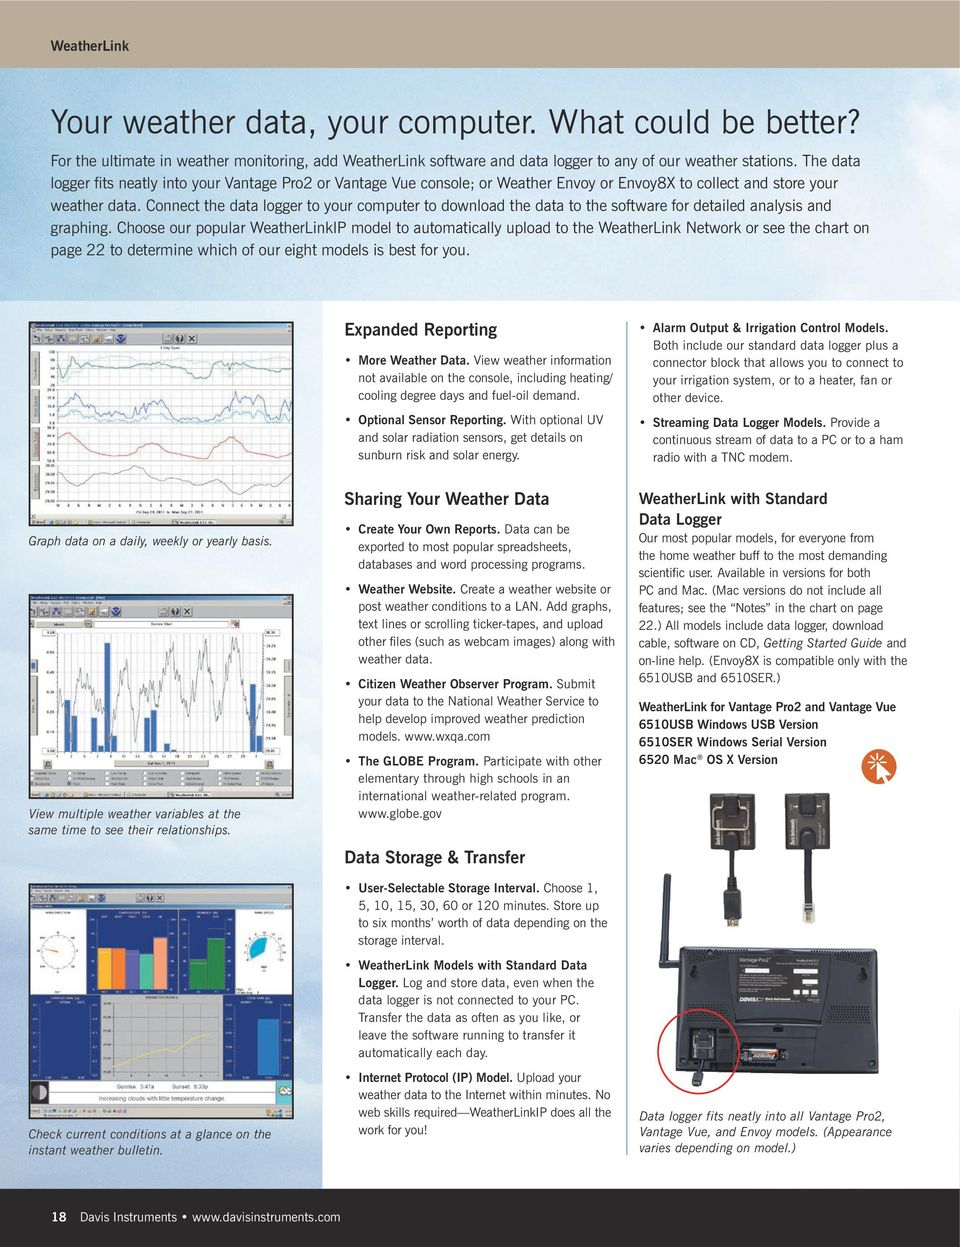 Connect the data logger to your computer to download the data to the software for detailed analysis and graphing.